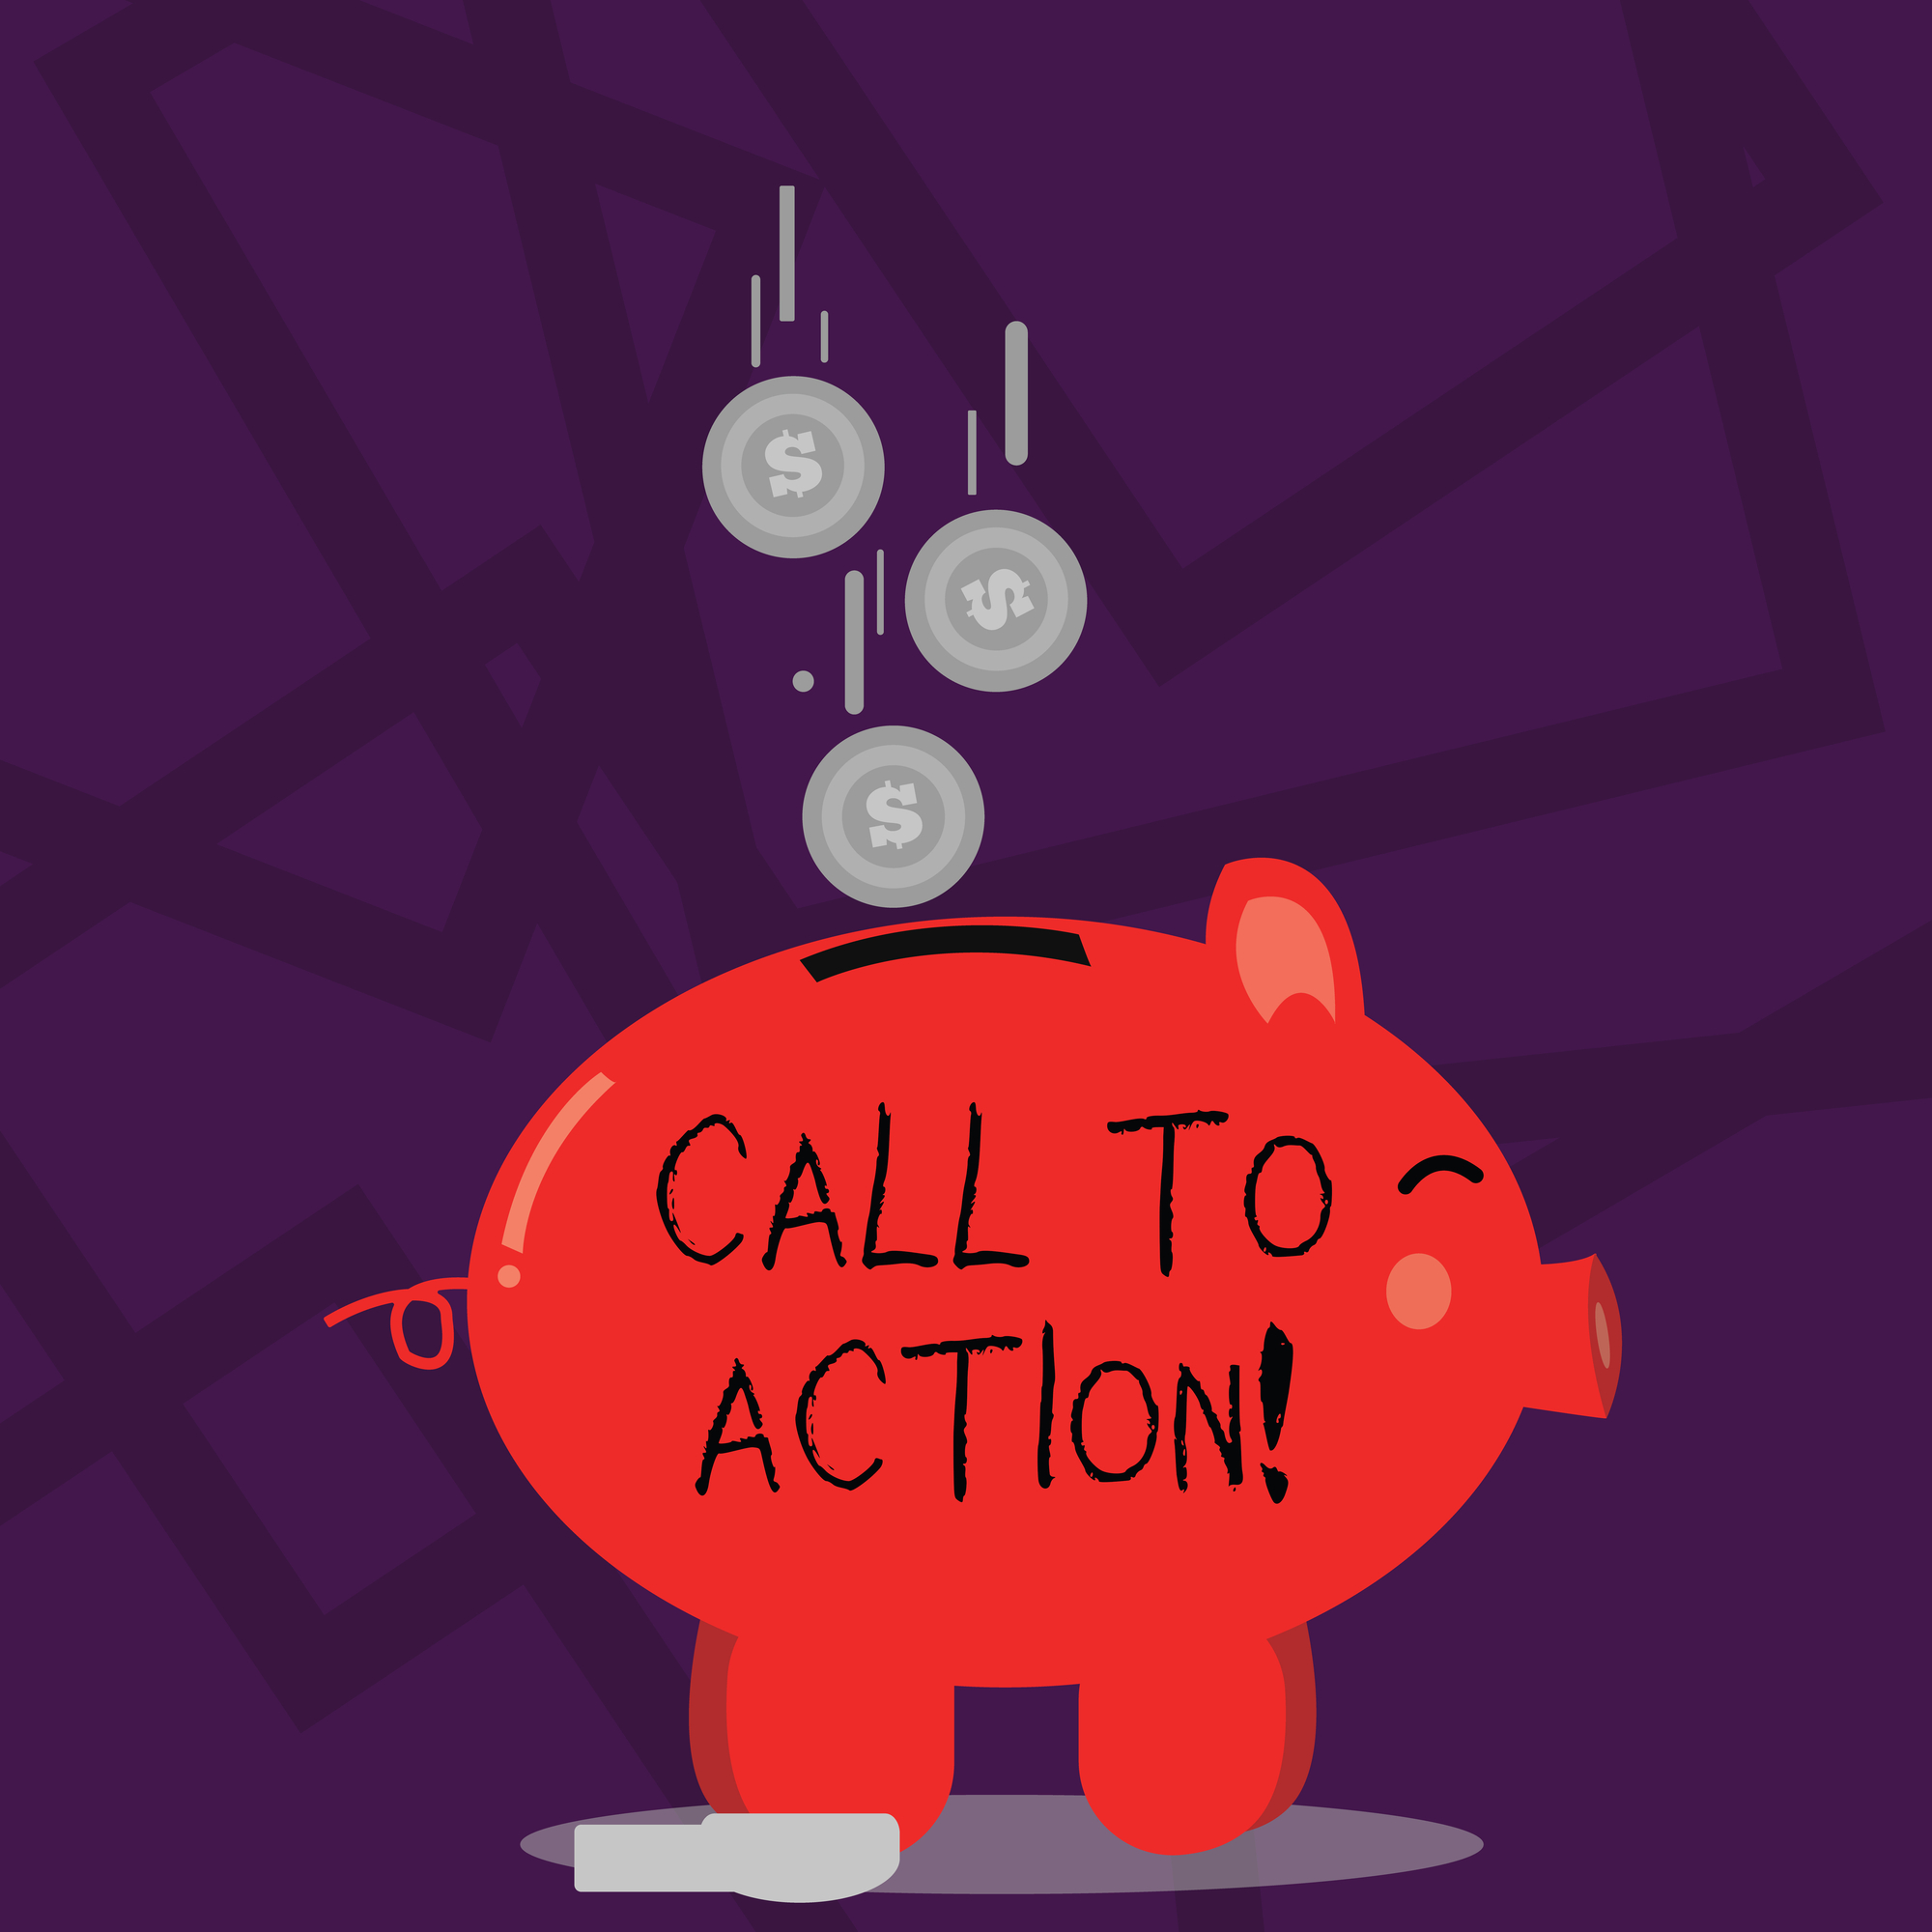 How to Write a Call To Action That Converts Leads